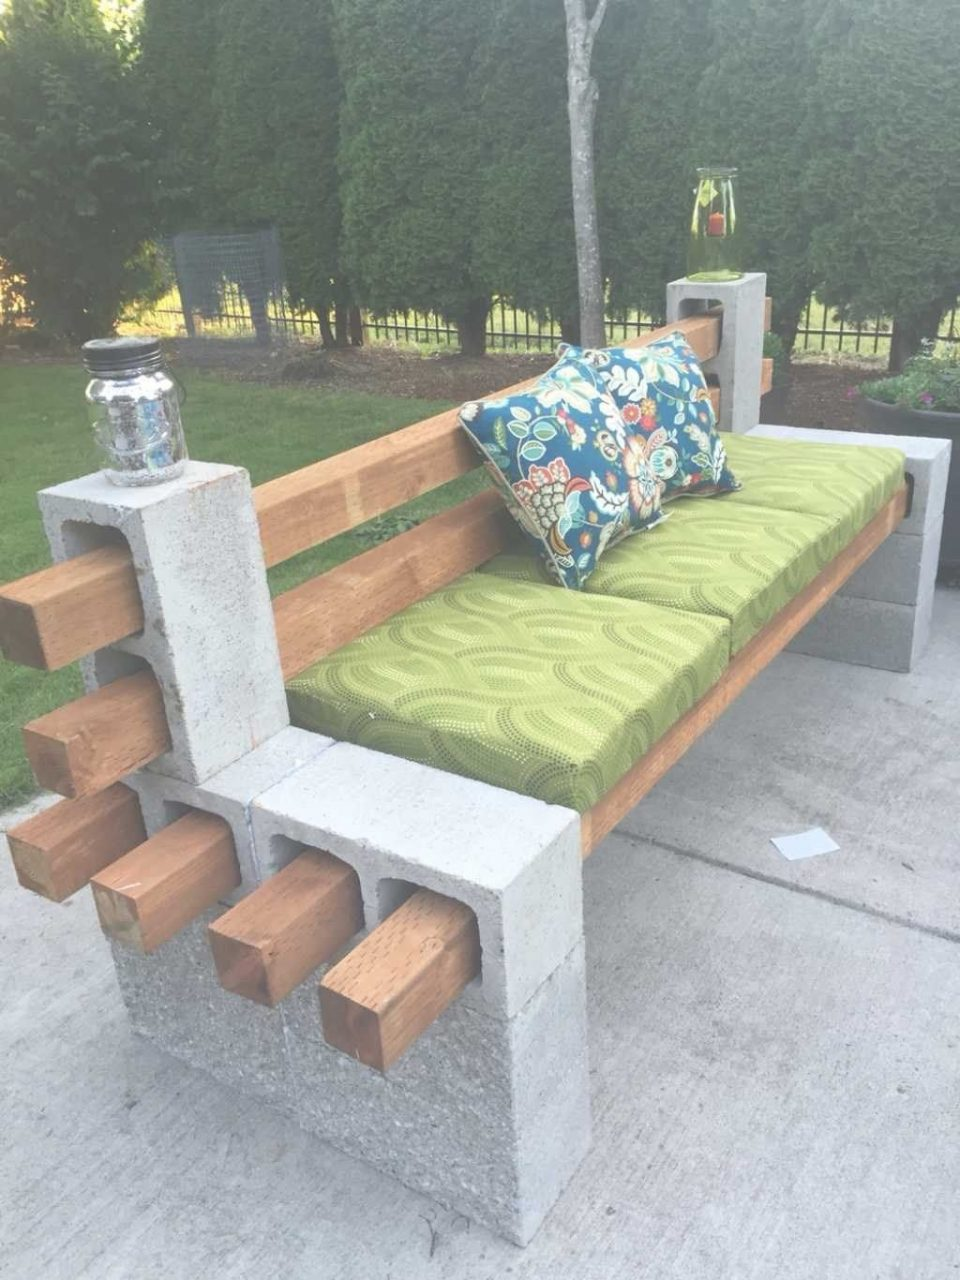 13 Diy Patio Furniture Ideas That Are Simple And Cheap Page 2 Of In